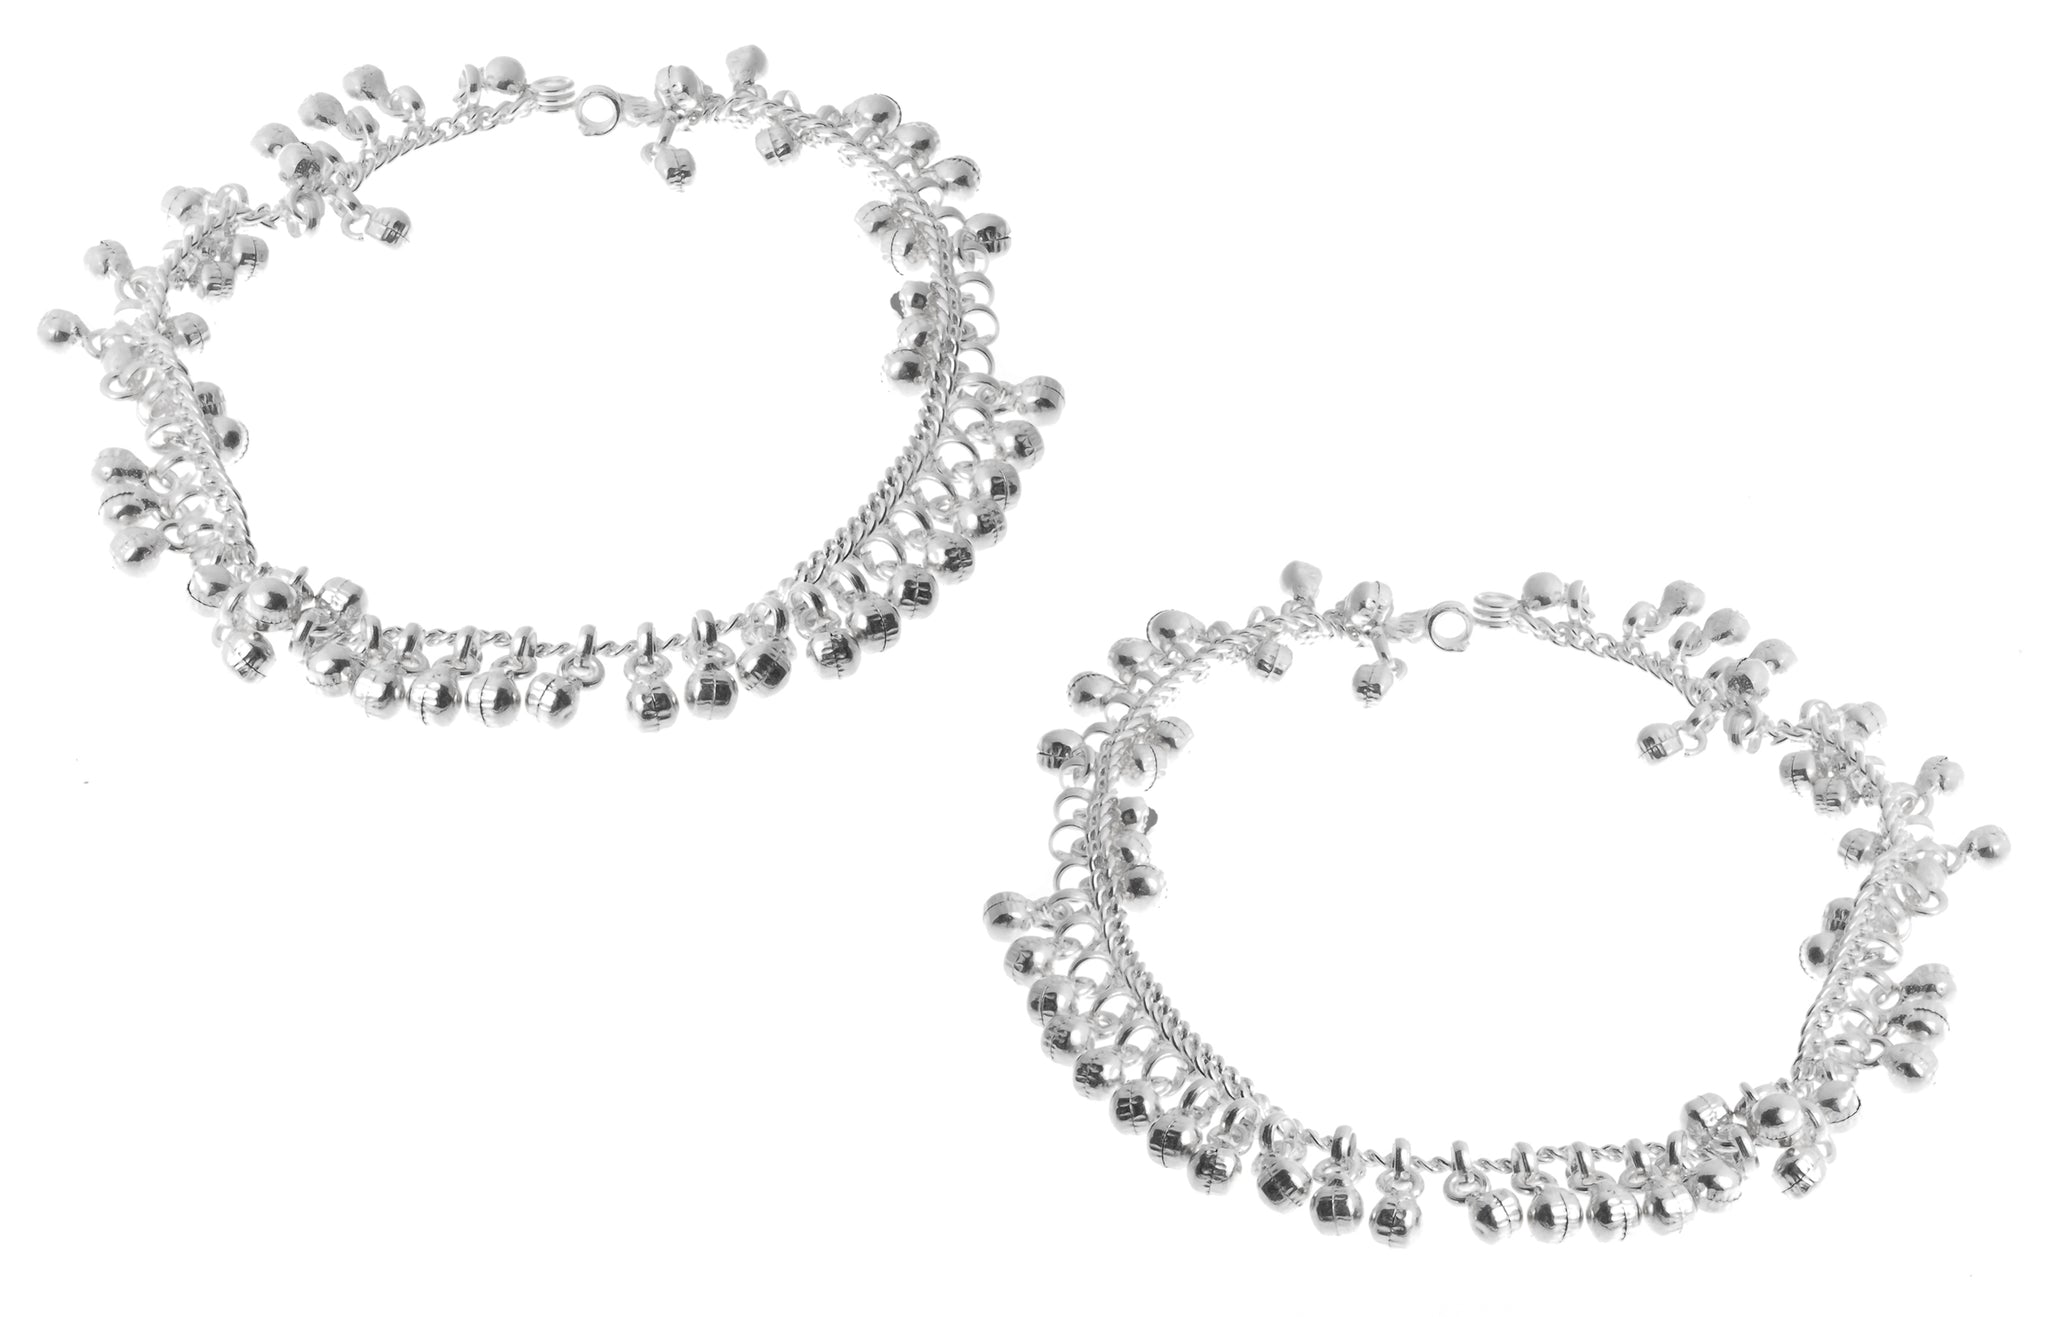 Silver Anklets with Ghughri Bell Charms A-7156 - Pair